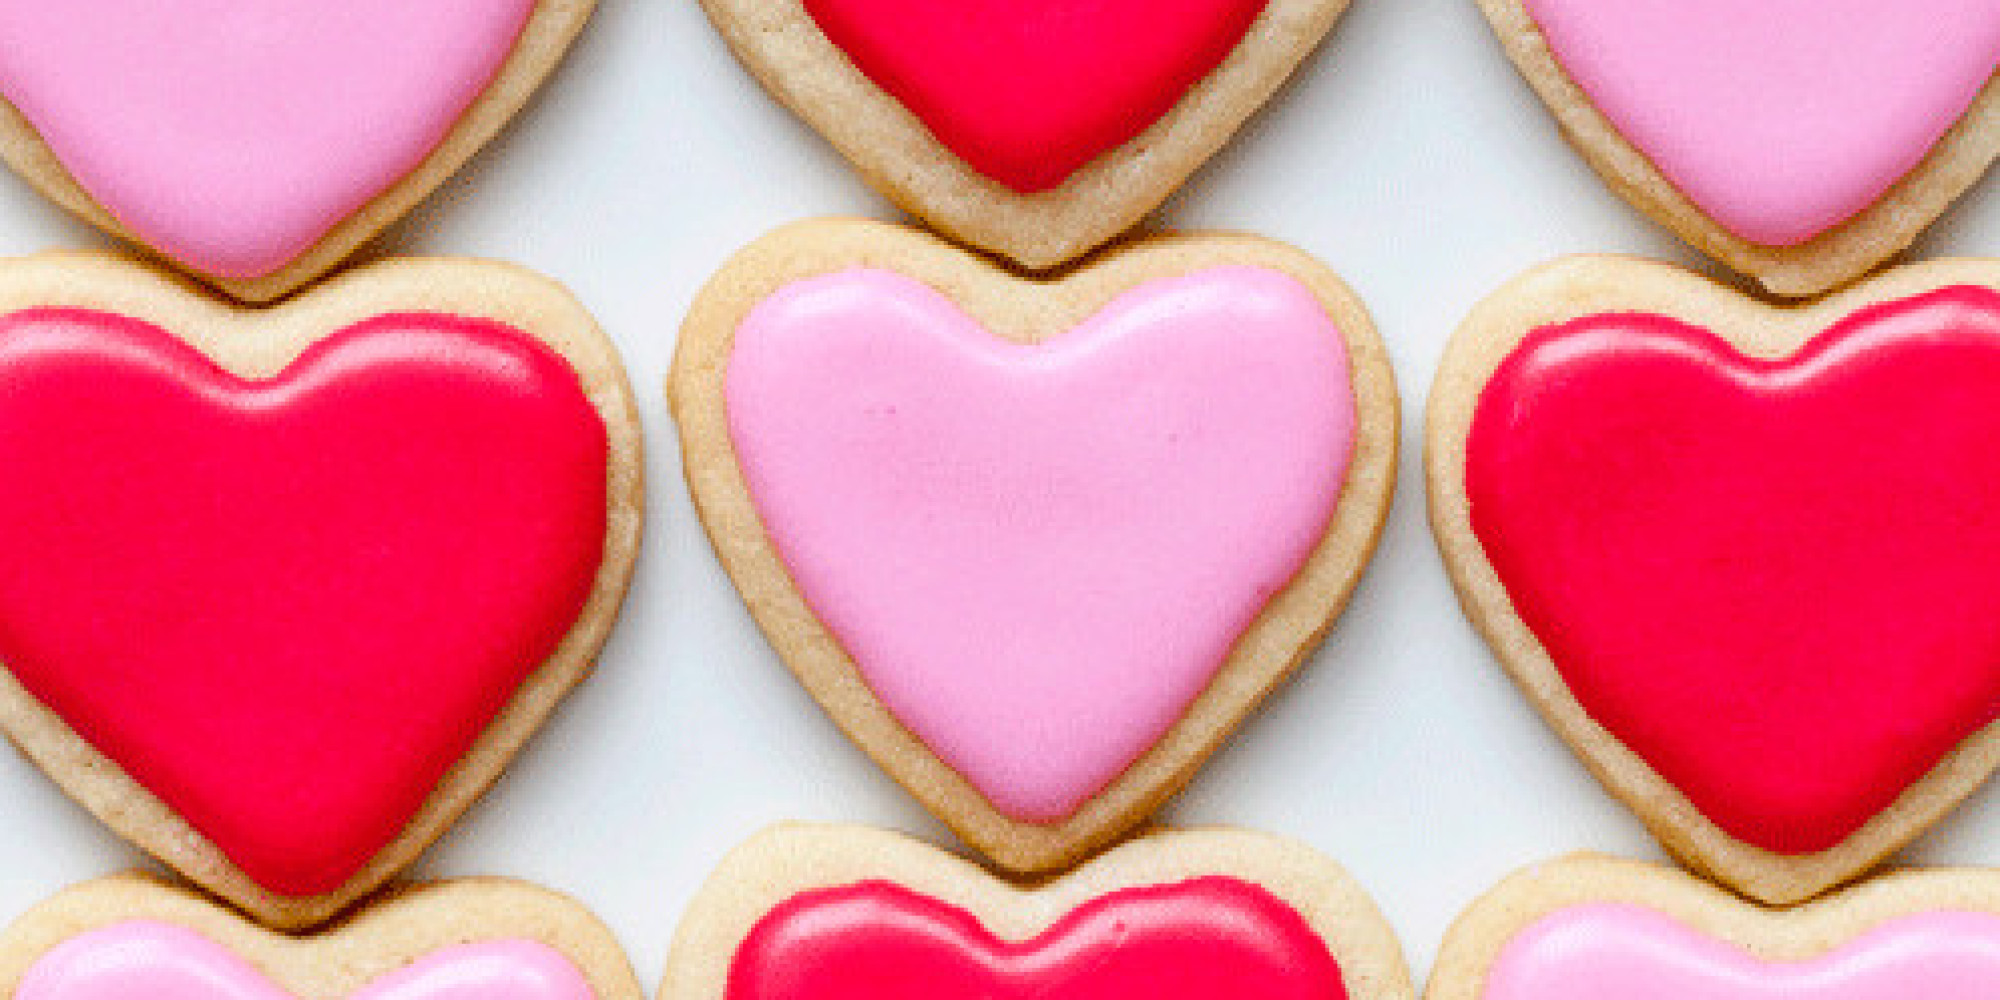 Heart Shaped Dessert Recipes For Valentine S Day Photos